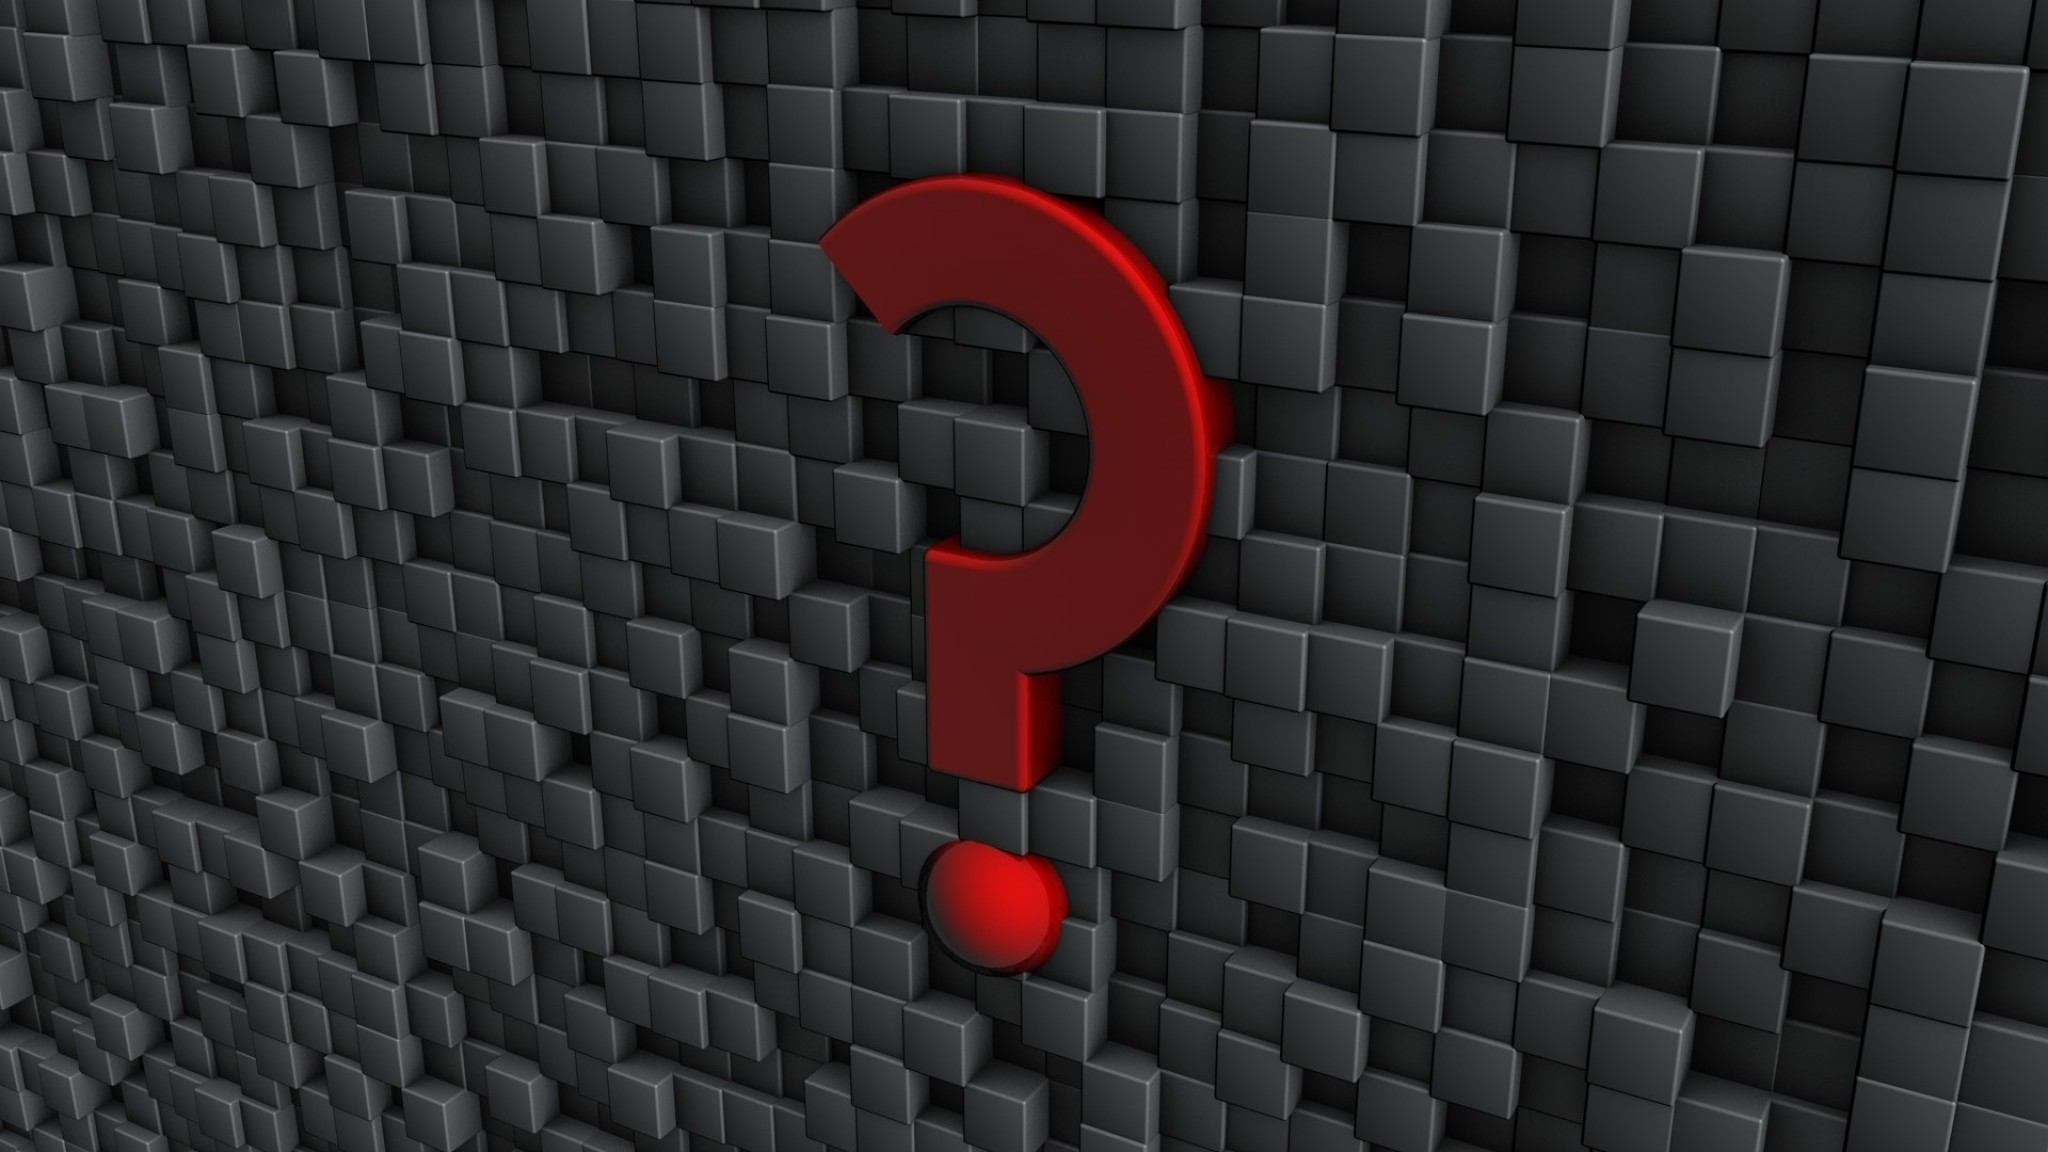 Wallpaper sign, question, punctuation, wall, form, metal